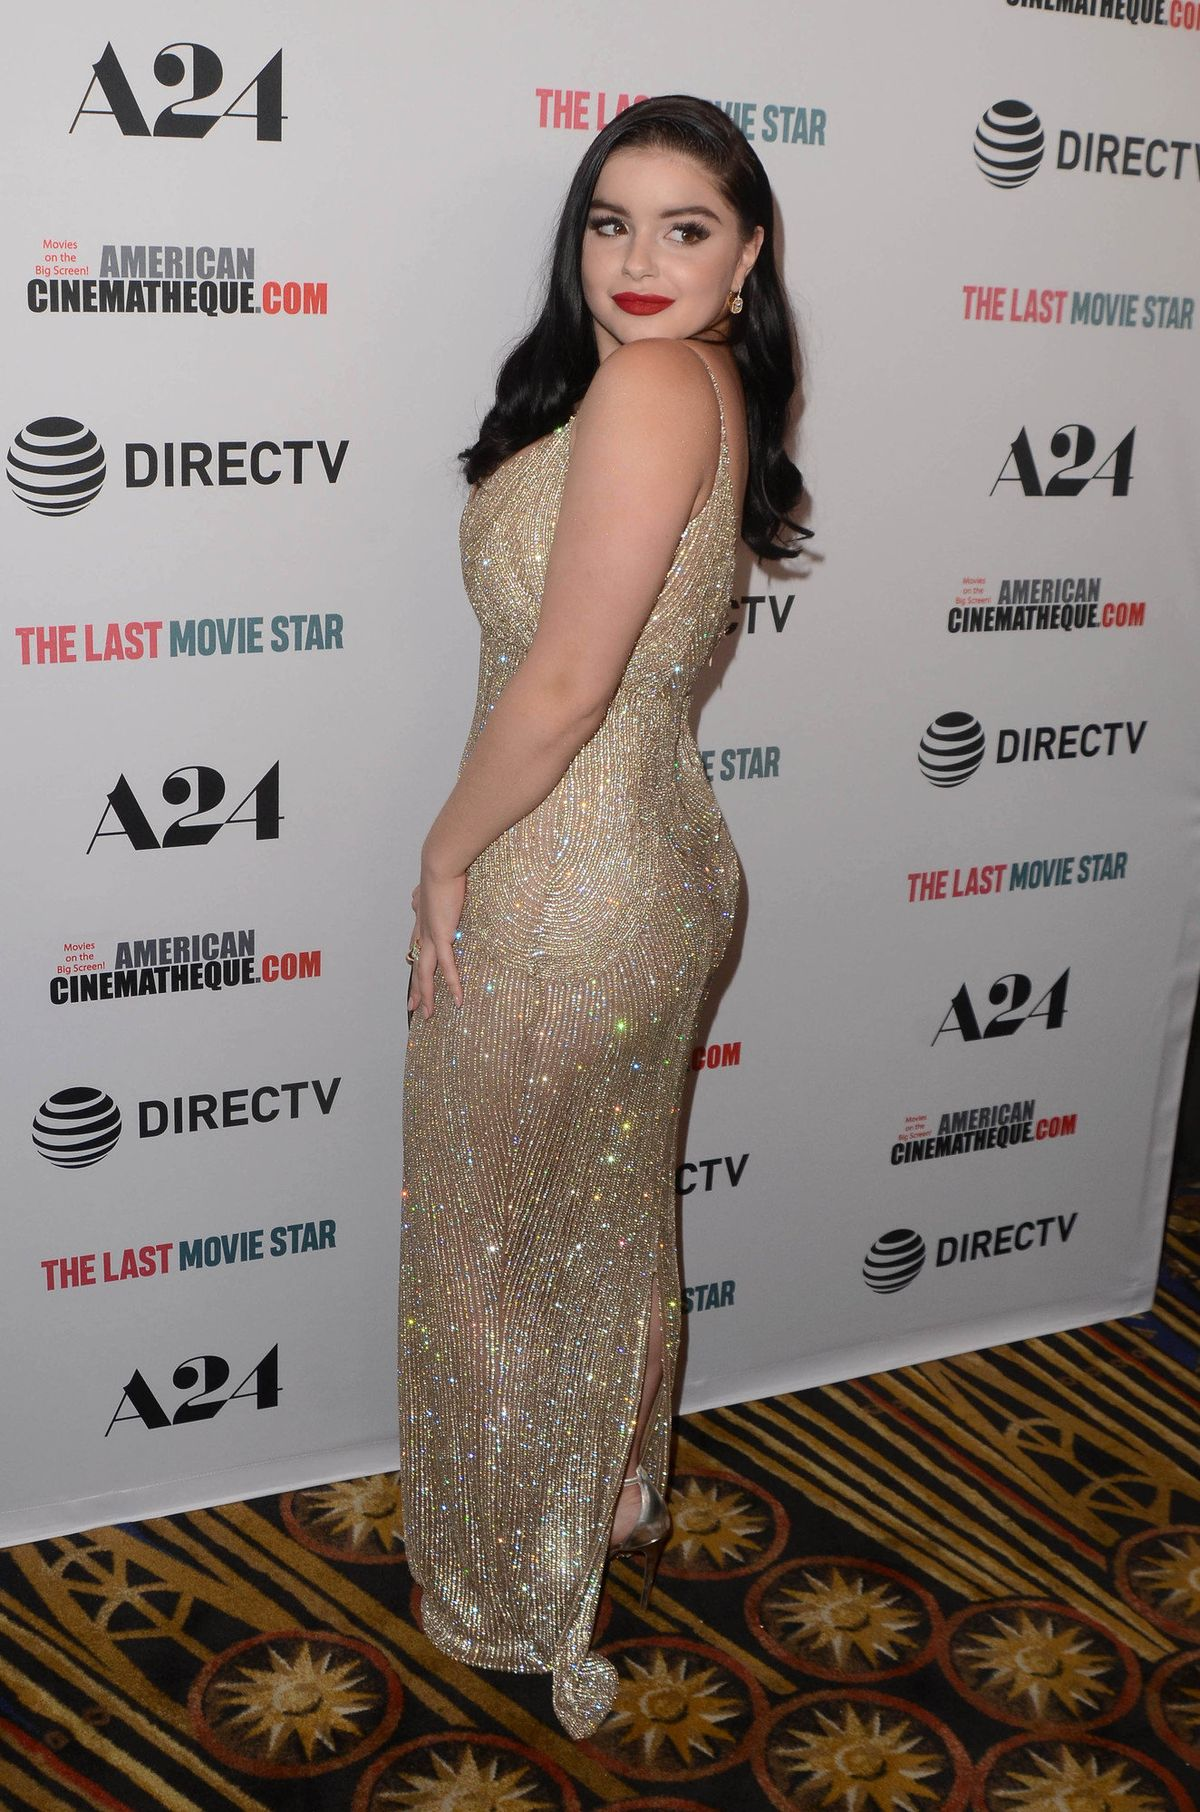 """Modern Family"" actress Ariel Winter channeled 1950s glamour for her return back into the spotlight. Click above to see more photos of her sparkly, old Hollywood-inspired gown!"